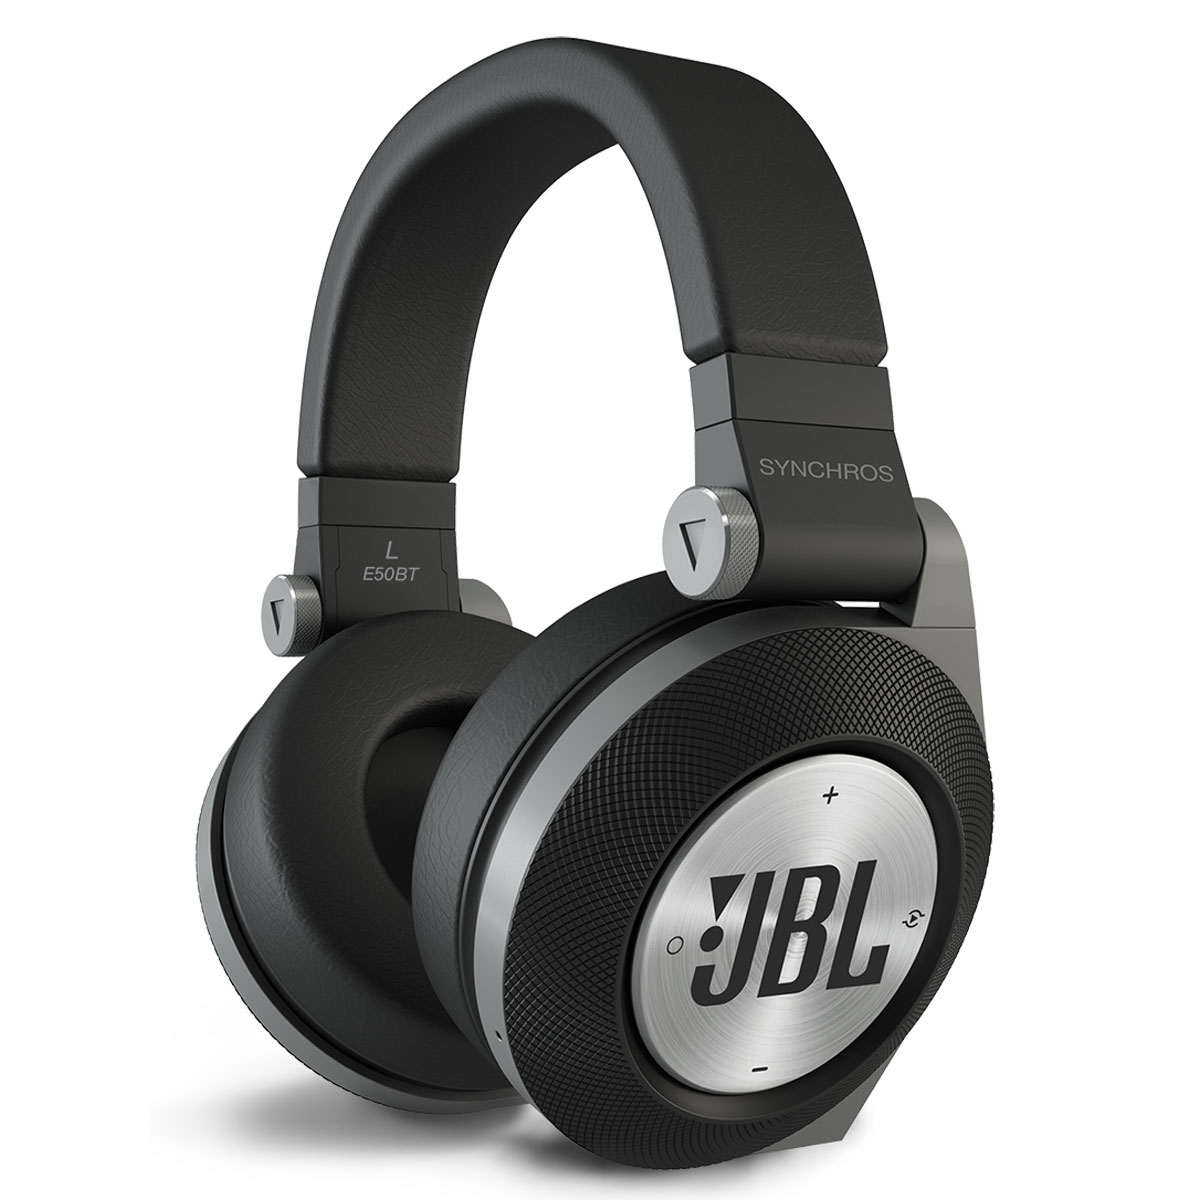 jbl e50bt noir e50btblk achat vente casque sur. Black Bedroom Furniture Sets. Home Design Ideas